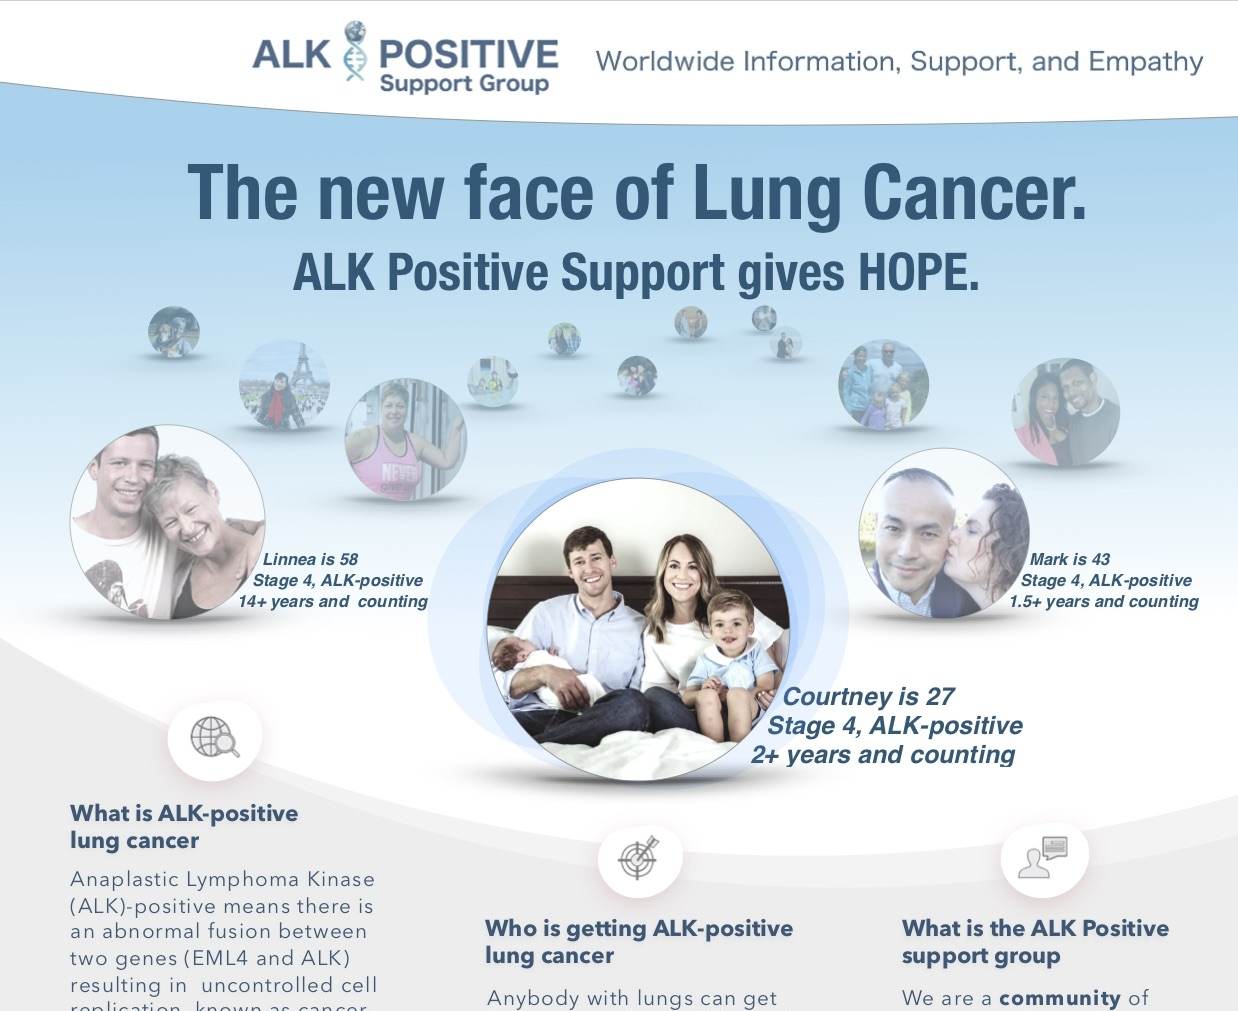 Download the New Patient Brochure - With general ALK Positive information and treatment reccomendations. Made by ALK patients!